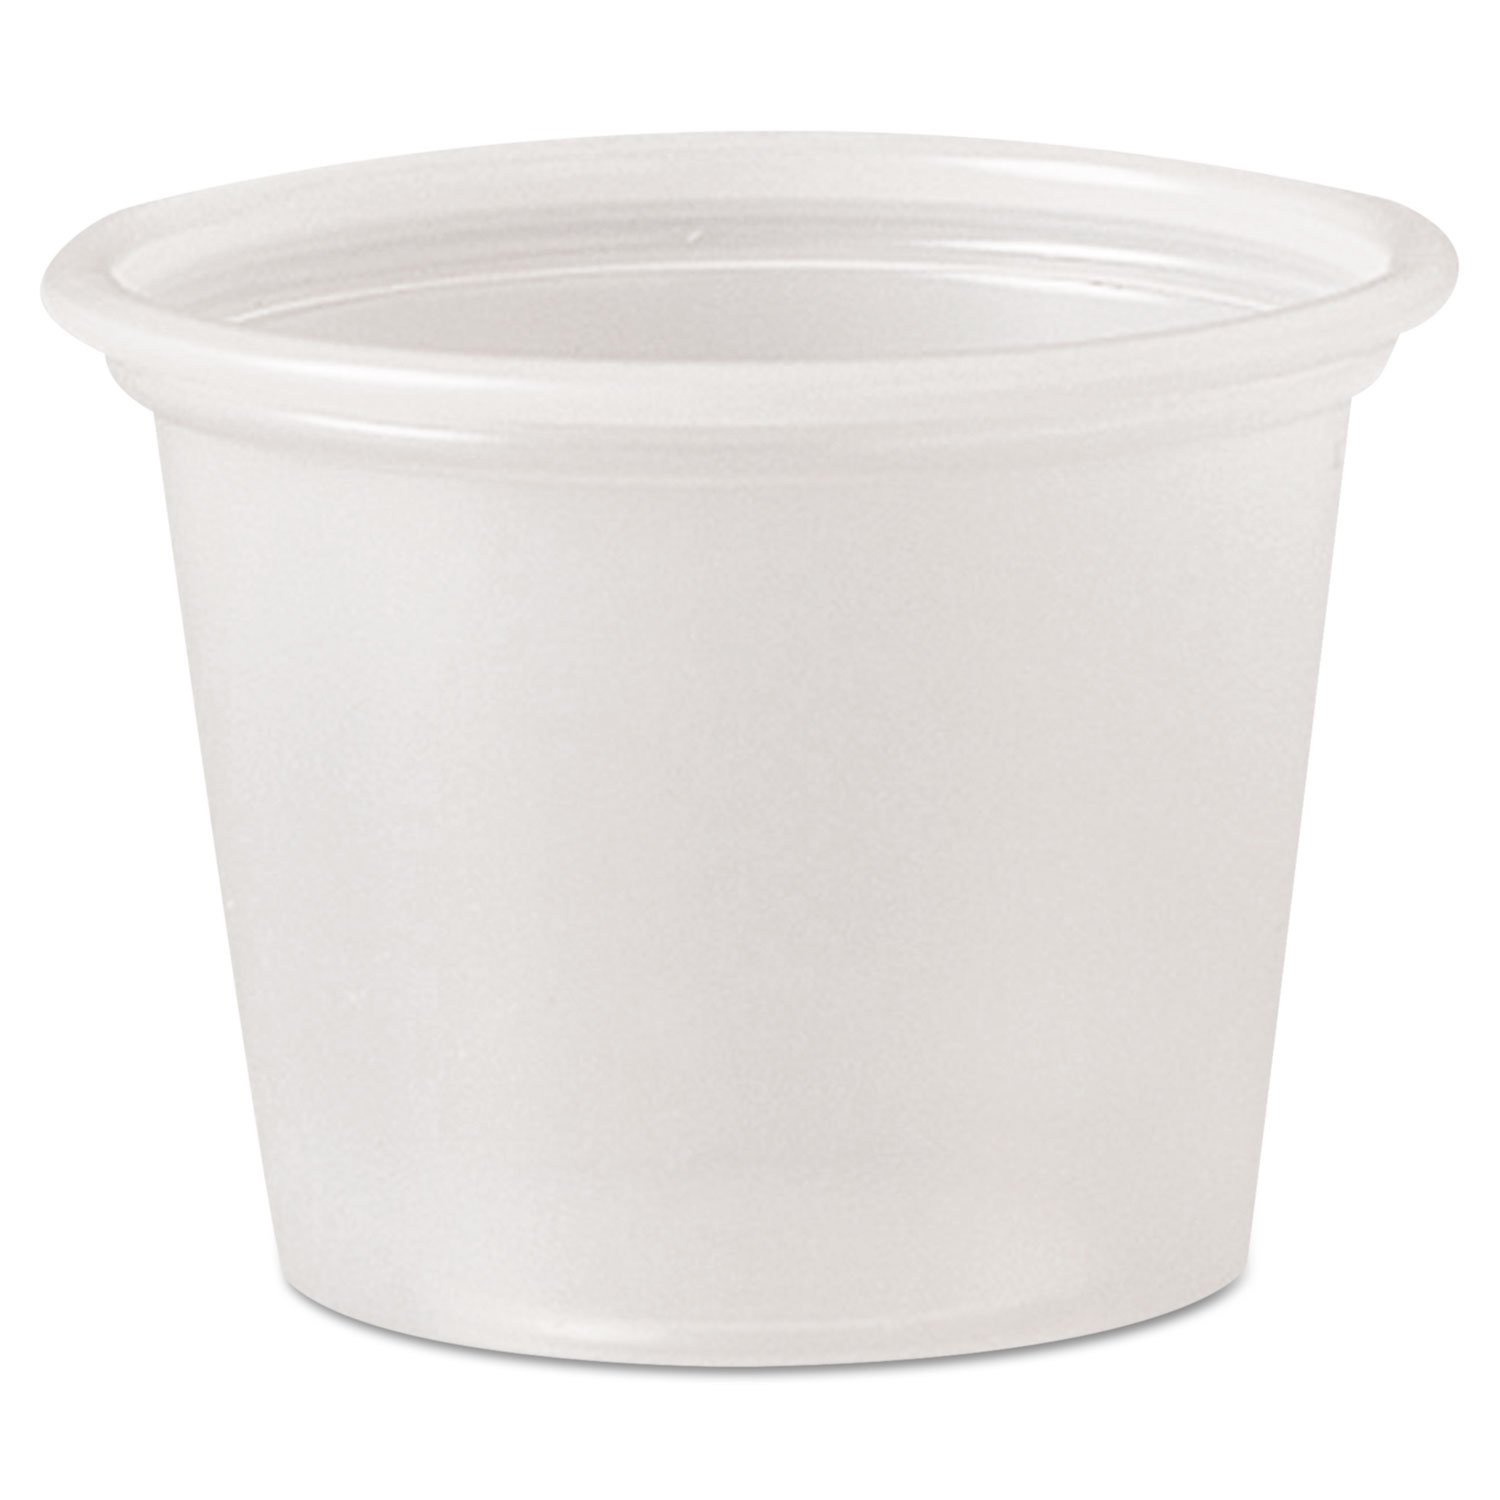 Solo Polystyrene Portion Cups, 1-ounce Medicine Souffle Cups, Translucent, Carton of 2,500 by DART